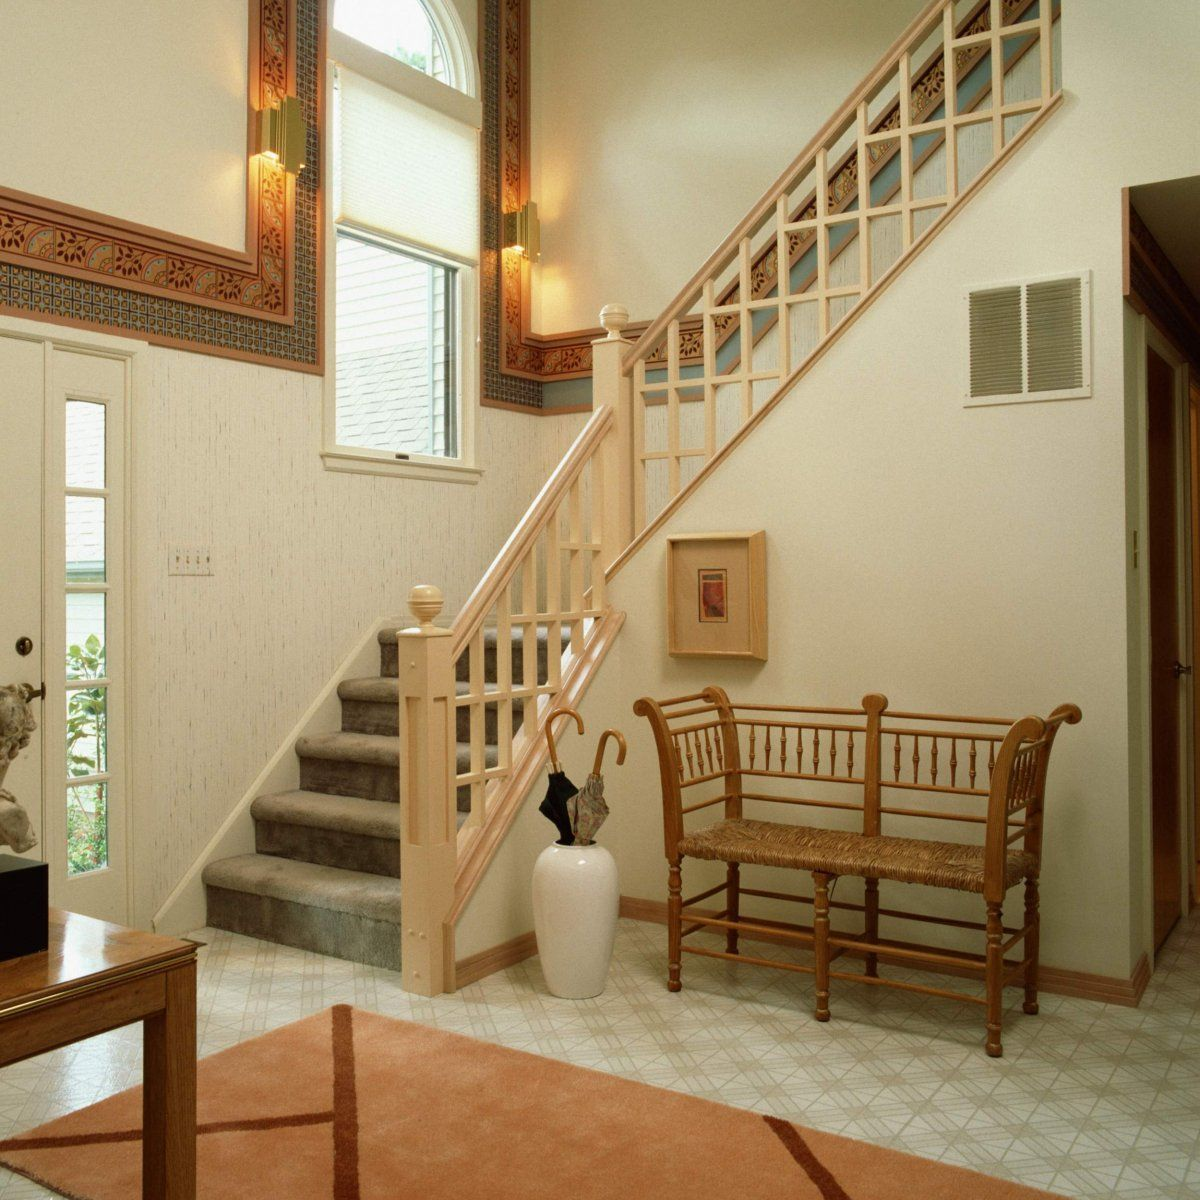 Reinforce A Staircase Wooden Railing